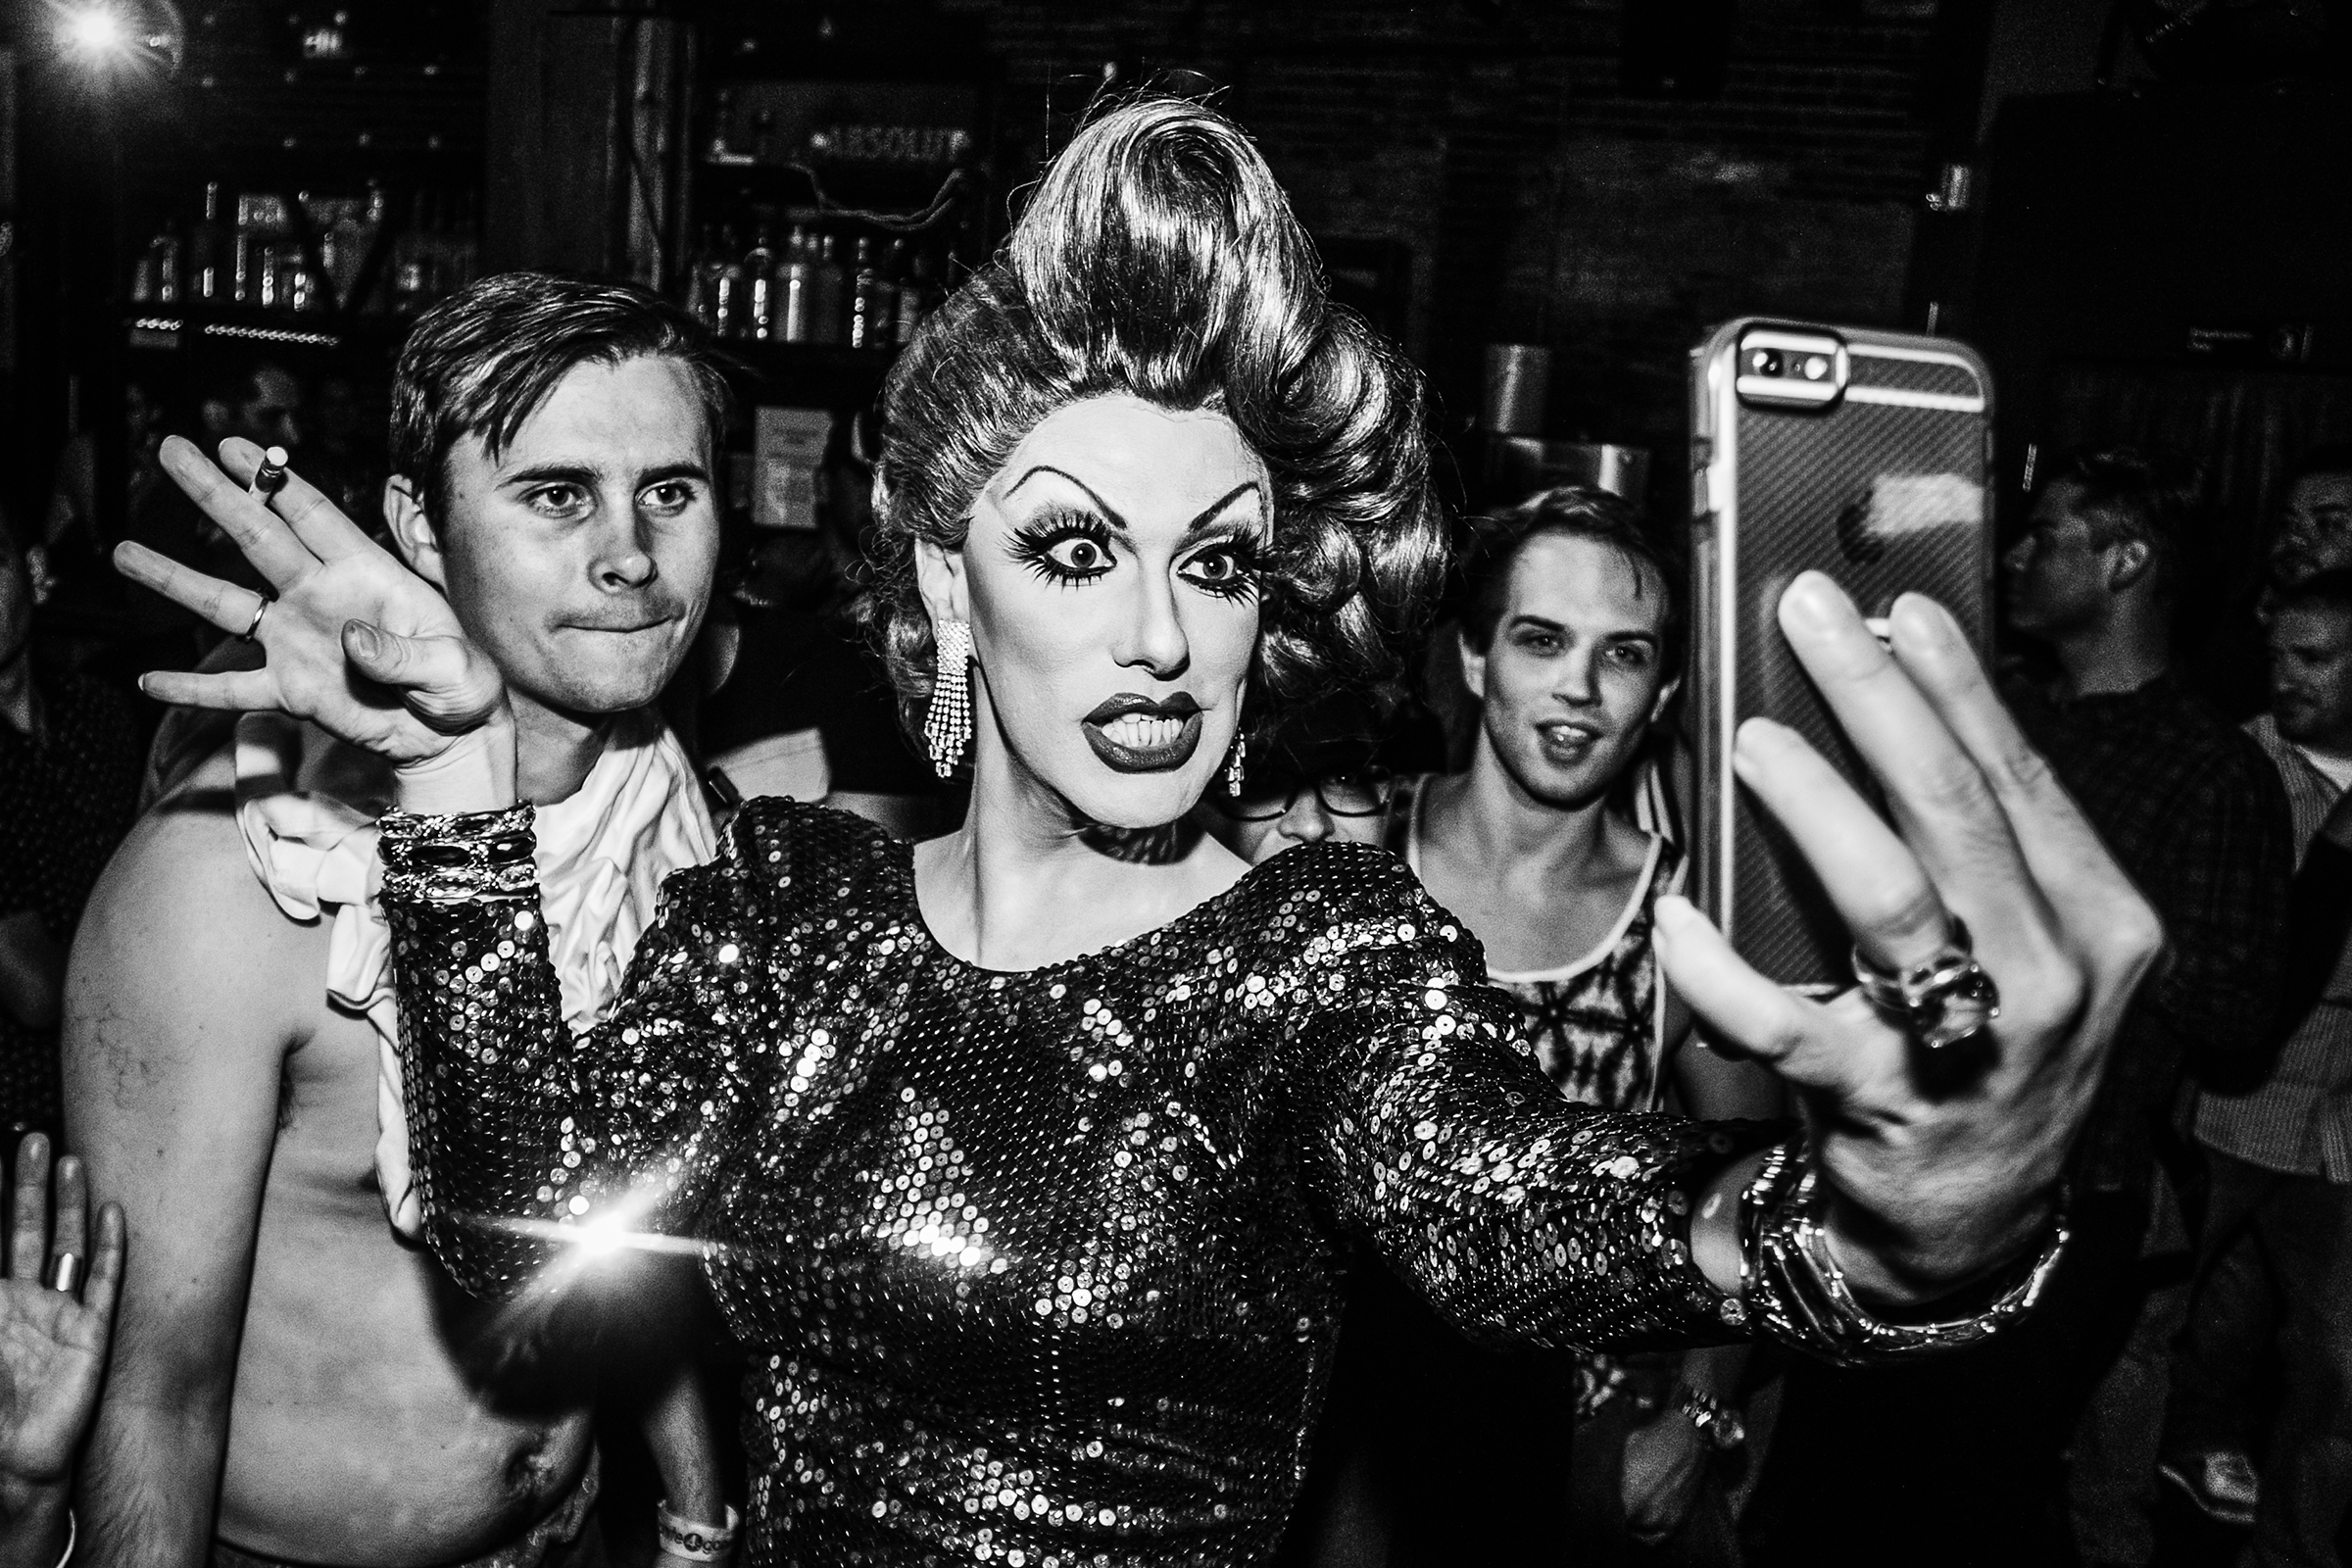 Robbie Turner, who appeared on season 8 of RuPaul's Drag Race, takes a selfie with a patron's phone during a performance at R Place on September 24th, 2015, in Seattle.